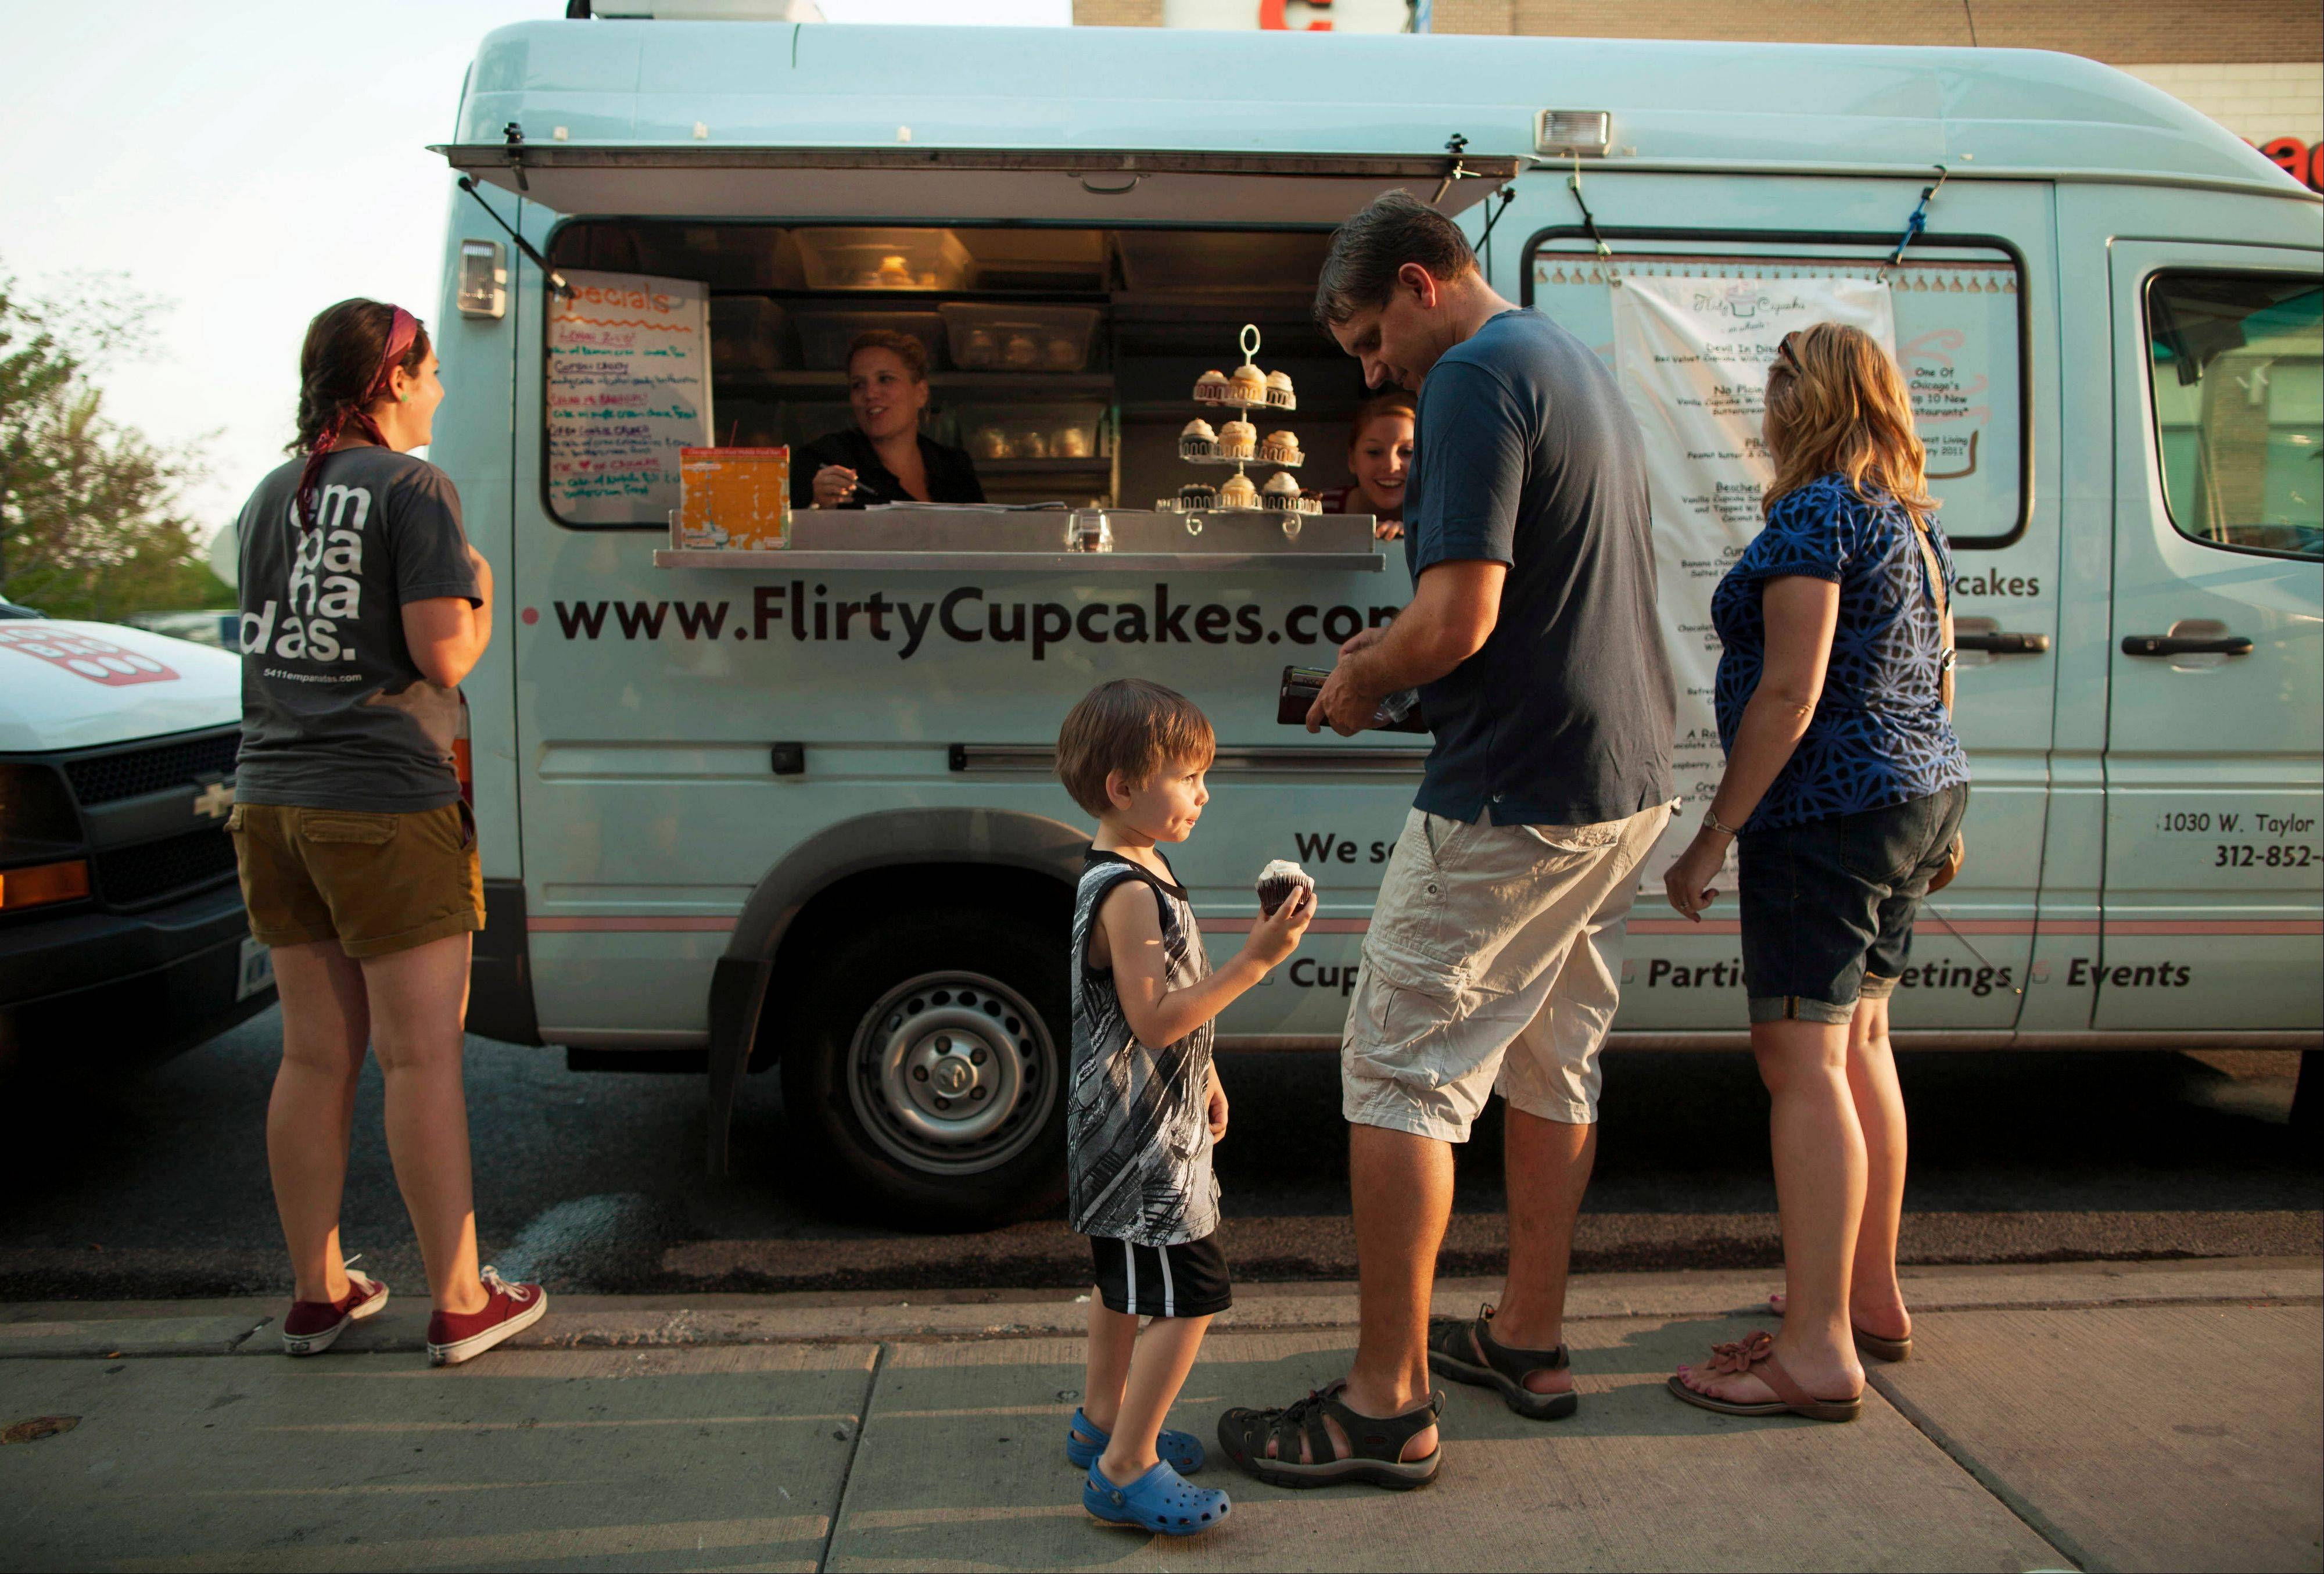 In this July 12, 2012 photo, a young customer eats a cupcake bought from the Flirty Cupcakes food truck in Chicago. A proposed ordinance would finally allow food trucks to cook and prepare food but continue to ban them from setting up shop any closer than 200 feet away from restaurants and capping the time they can stay put in one spot at two hours. The full City Council could vote on the proposal as soon as next week.